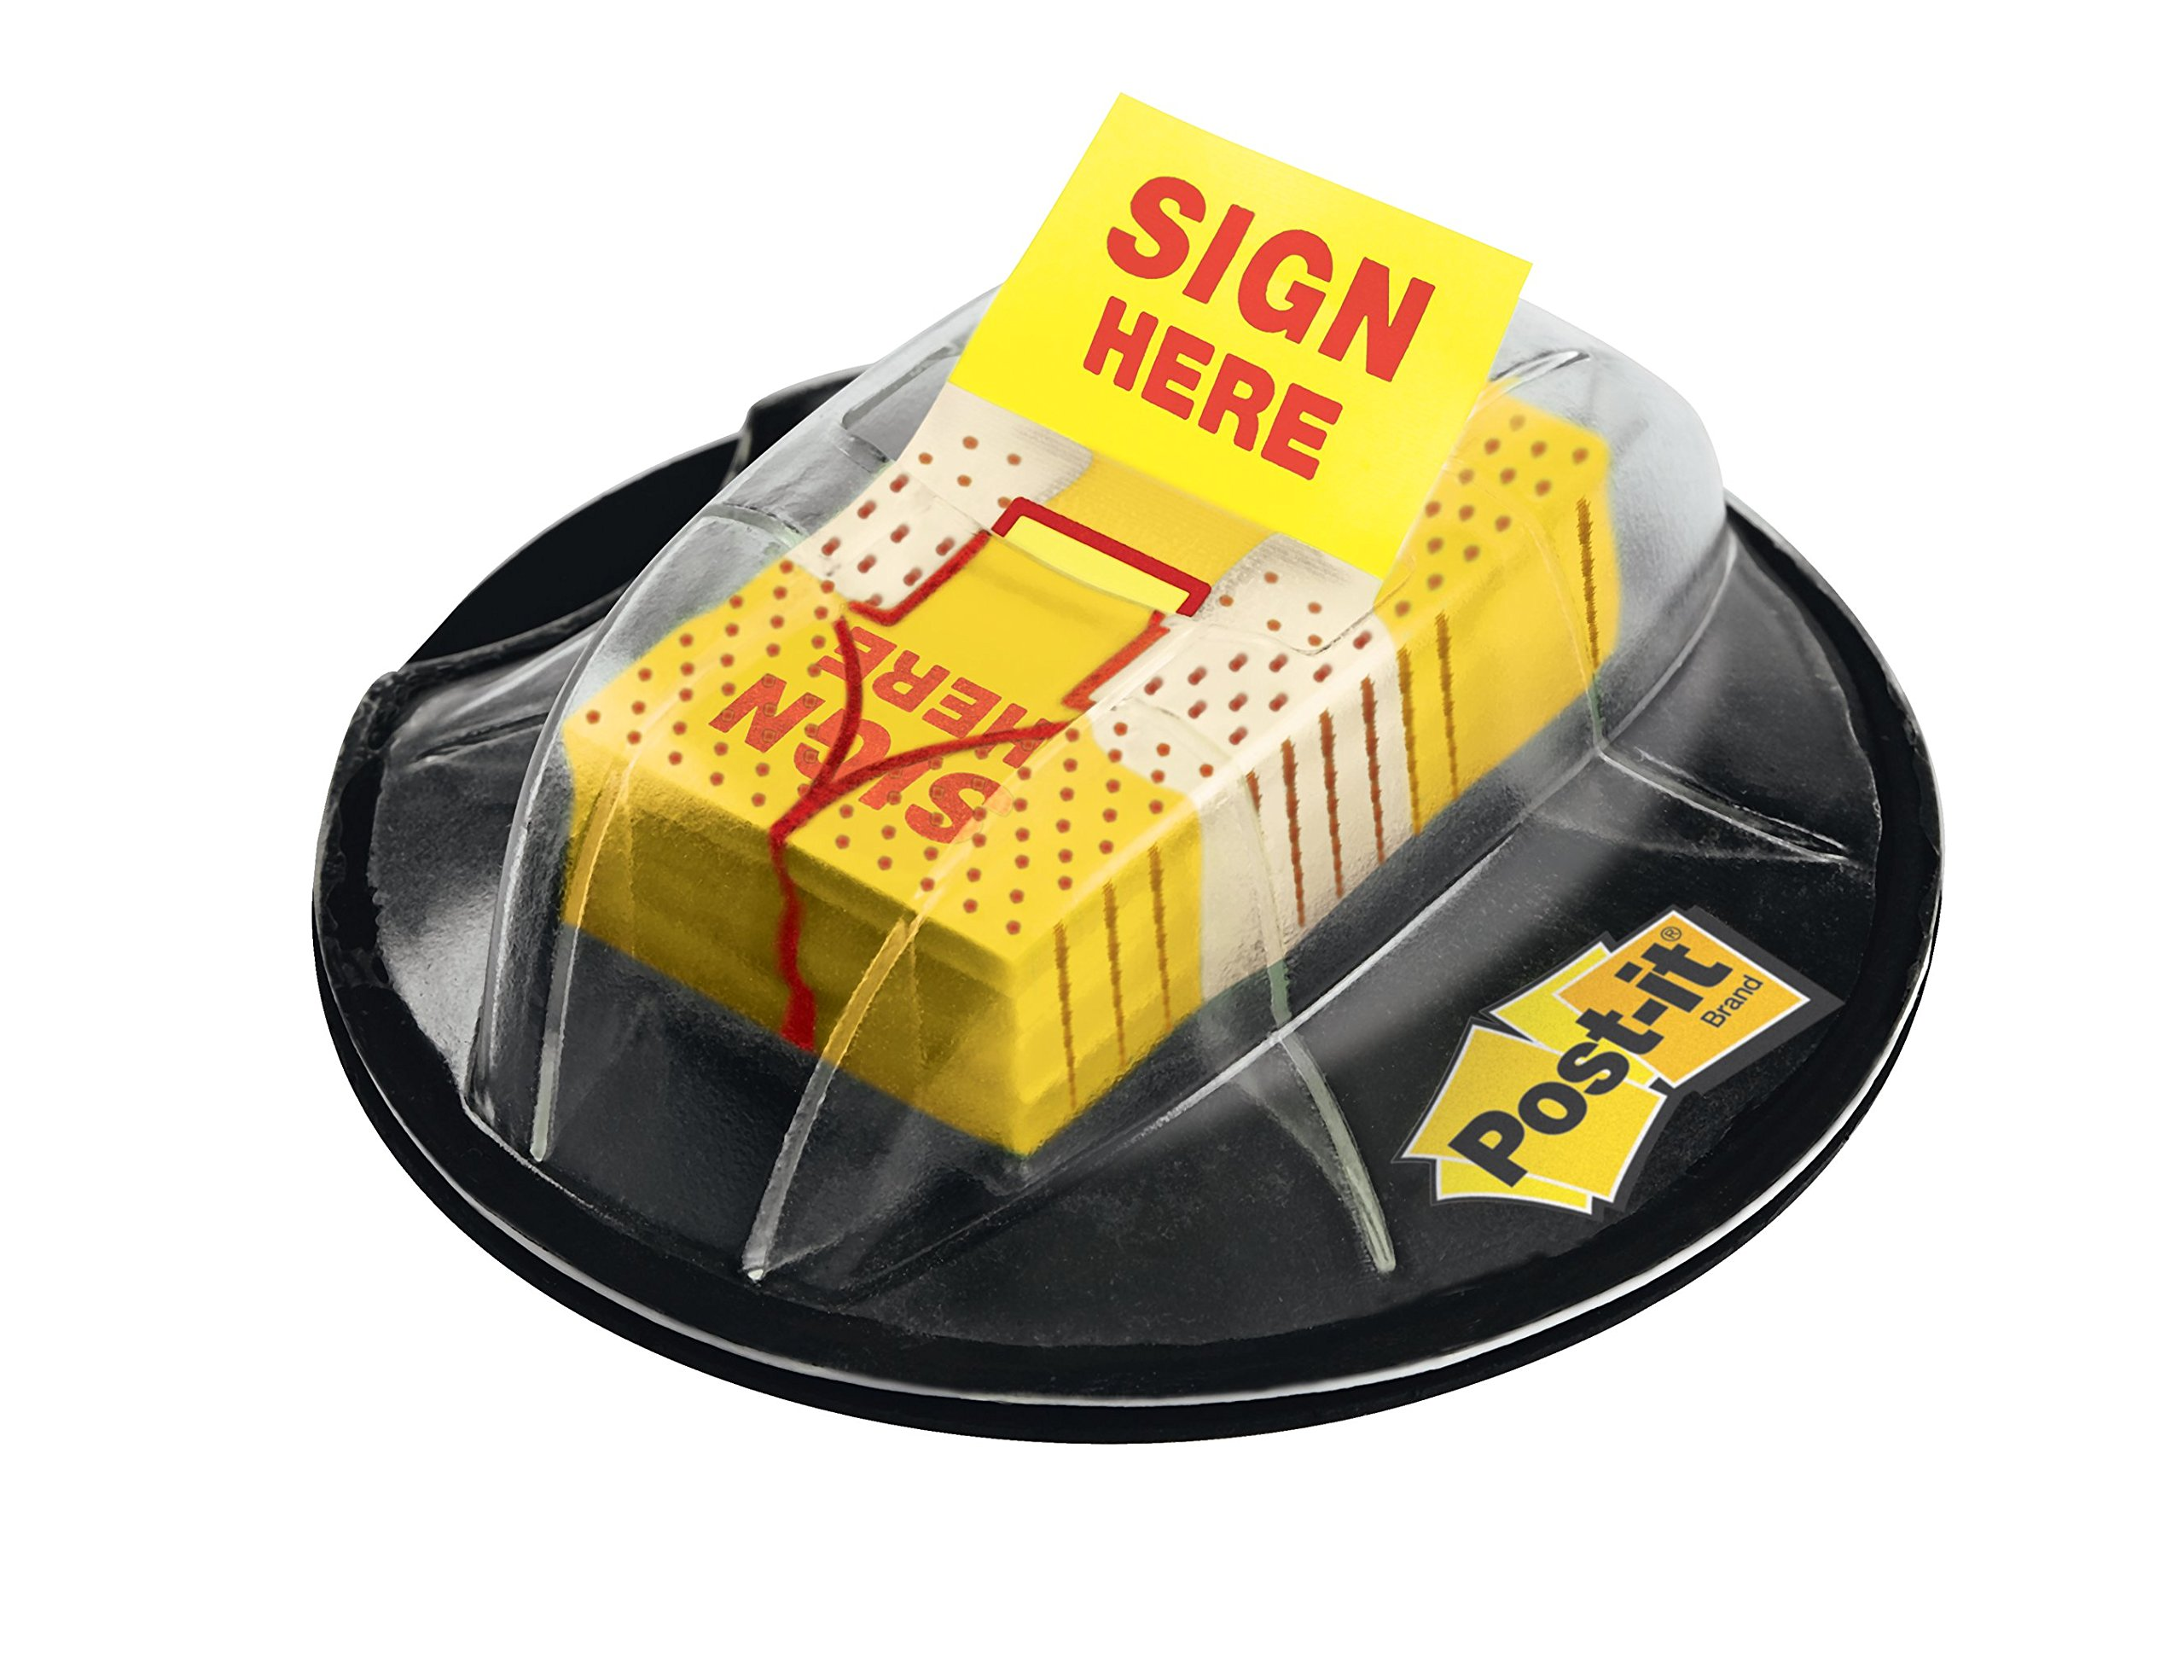 Post-it Flags,''Sign Here'', Yellow, 1-Inch Wide, 200/Dispenser (680-HVSH)